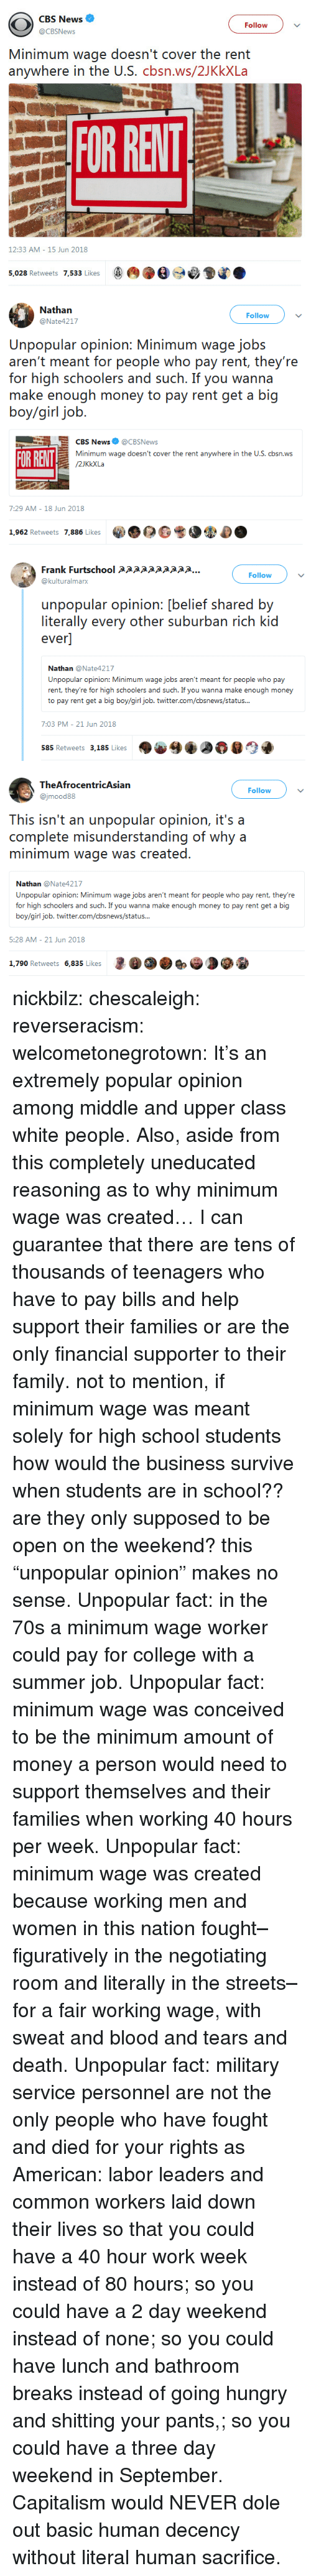 "Rich Kid: CBS News  @CBSNews  Follow  Minimum wage doesn't cover the rent  anywhere in the U.S. cbsn.ws/2JKkXLa  OR RELT  12:33 AM - 15 Jun 2018  5,028 Retweets 7,533 Likes   Nathan  @Nate4217  Follow  Unpopular opinion: Minimum wage jobs  aren'i rncai for people who pay reni, they're  for high schoolers and such. If you wanna  boy/girl job.  CBS News@CBSNews  Minimum wage doesn't cover the rent anywhere in the U.S. cbsn.ws  FOR RENT  7:29 AM- 18 Jun 2018  1,962 Retweets 7,886 Likes  0 G  ザ  .   Frank Furtschool apppaaaapp...  @kulturalmarx  Follow  unpopular opinion: [belief shared by  literally every other suburban rich kid  ever]  Nathan @Nate4217  Unpopular opinion: Minimum wage jobs aren't meant for people who pay  rent, they're for high schoolers and such. If you wanna make enough money  nt get a big boy/girl job  7:03 PM- 21 Jun 2018  585 Retweets 3,185 Likes   TheAfrocentricAsian  @jmood88  Follow  This isn't an unpopular opinion, it's a  complete misunderstanding of why a  minimum wage was created.  Nathan @Nate4217  Unpopular opinion: Minimum wage jobs aren't meant for people who pay rent, they're  for high schoolers and such. If you wanna make enough money to pay rent get a big  boy/girl job. twitter.com/cbsnews/status  5:28 AM- 21 Jun 2018  1,790 Retweets 6,835 Likes nickbilz: chescaleigh:   reverseracism:  welcometonegrotown: It's an extremely popular opinion among middle and upper class white people. Also, aside from this completely uneducated reasoning as to why minimum wage was created…  I can guarantee that there are tens of thousands of teenagers who have to pay bills and help support their families or are the only financial supporter to their family.    not to mention, if minimum wage was meant solely for high school students how would the business survive when students are in school??  are they only supposed to be open on the weekend? this ""unpopular opinion"" makes no sense.    Unpopular fact: in the 70s a minimum wage worker could pay for college with a summer job.  Unpopular fact: minimum wage was conceived to be the minimum amount of money a person would need to support themselves and their families when working 40 hours per week. Unpopular fact: minimum wage was created because working men and women in this nation fought–figuratively in the negotiating room and literally in the streets–for a fair working wage, with sweat and blood and tears and death.  Unpopular fact: military service personnel are not the only people who have fought and died for your rights as American: labor leaders and common workers laid down their lives so that you could have a 40 hour work week instead of 80 hours; so you could have a 2 day weekend instead of none; so you could have lunch and bathroom breaks instead of going hungry and shitting your pants,; so you could have a three day weekend in September. Capitalism would NEVER dole out basic human decency without literal human sacrifice."